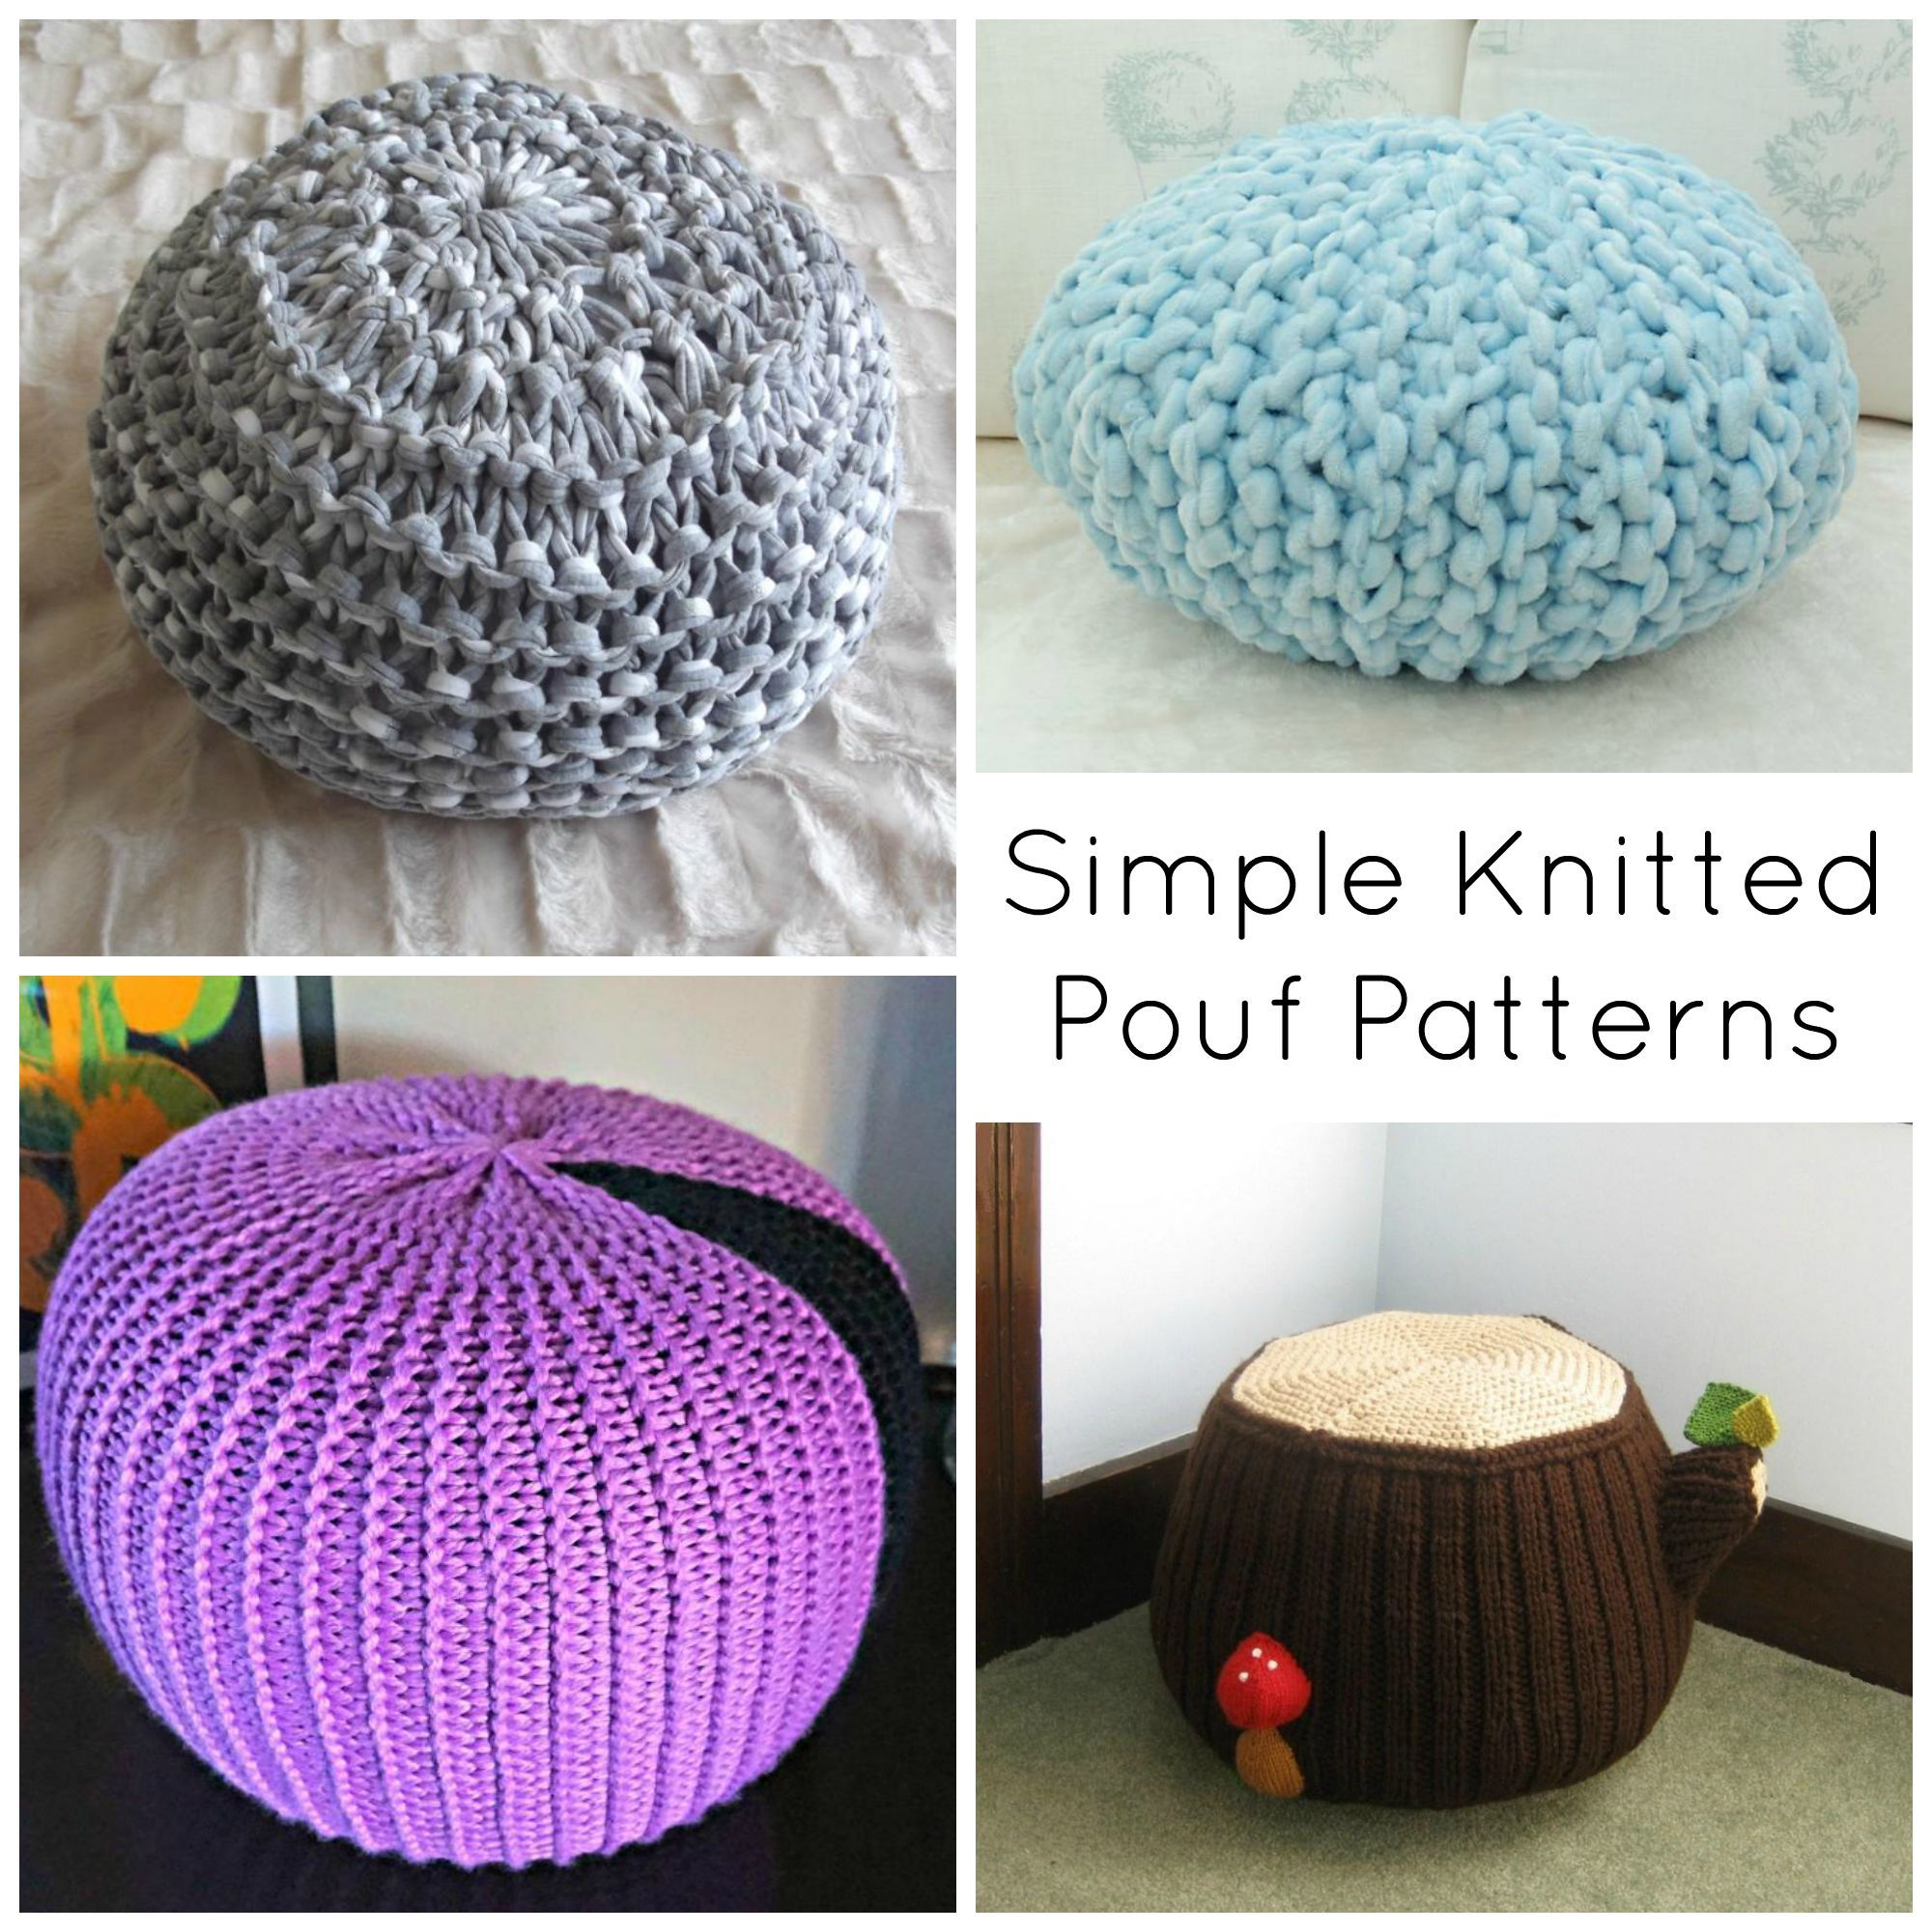 Kick Back in Cozy Style With Simple Knitted Pouf Patterns ...